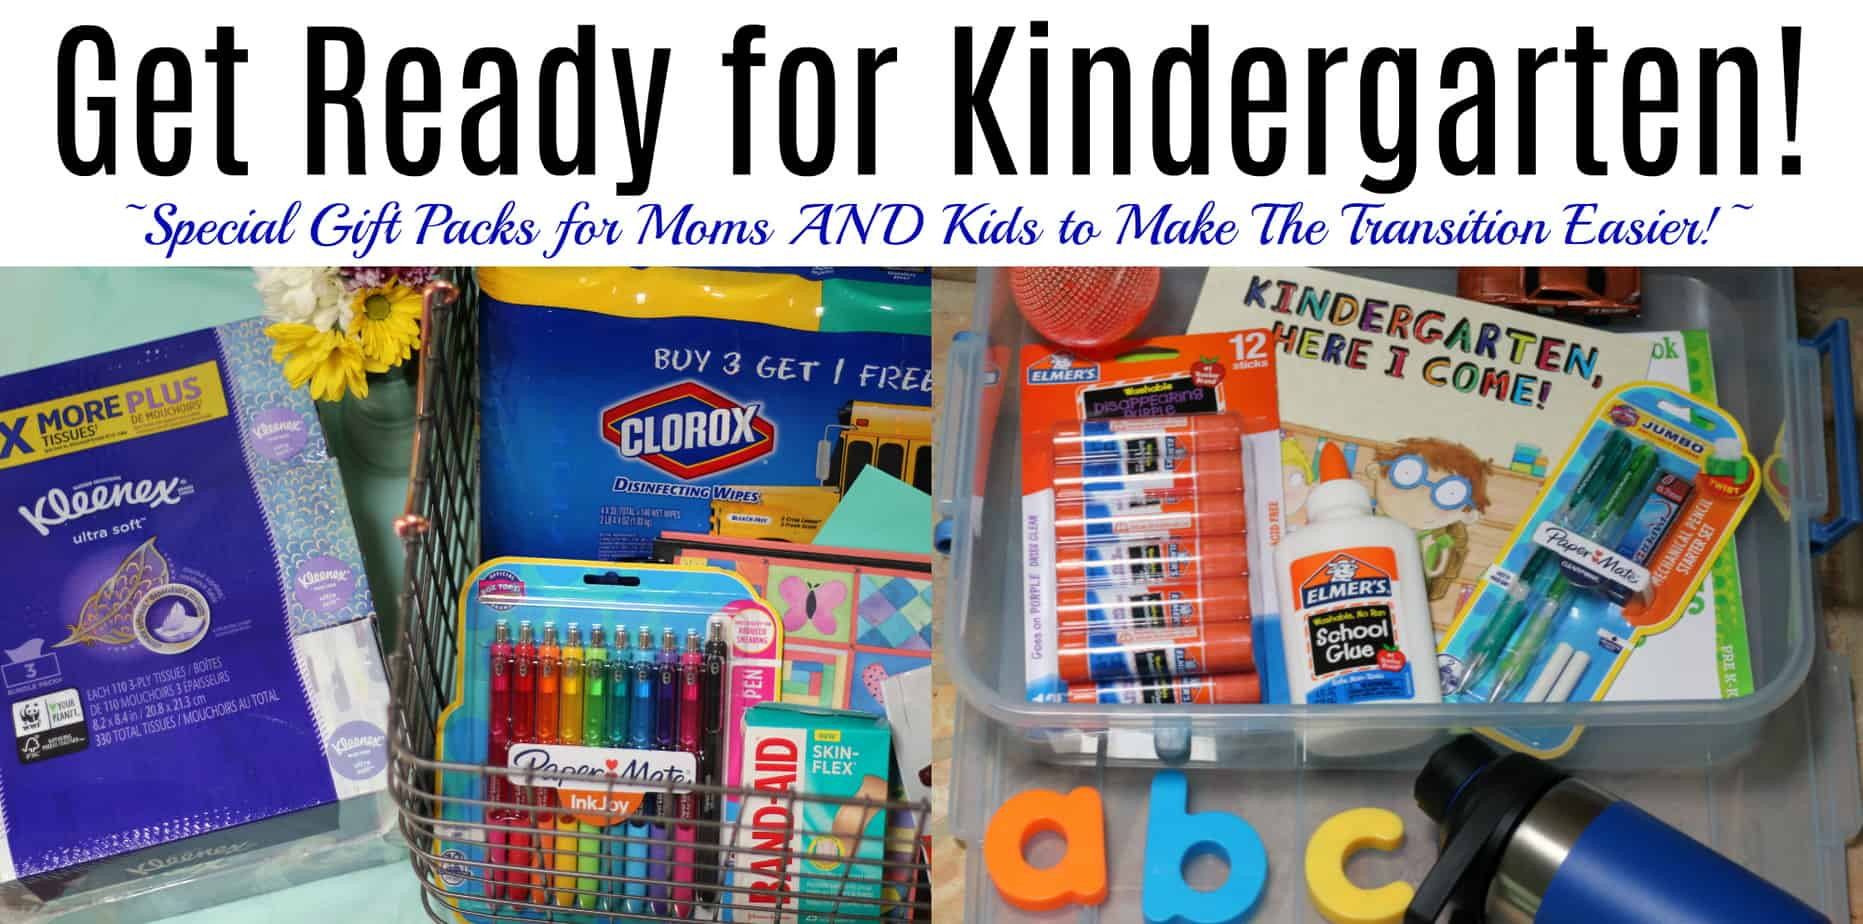 get ready for kindergarten gift packs